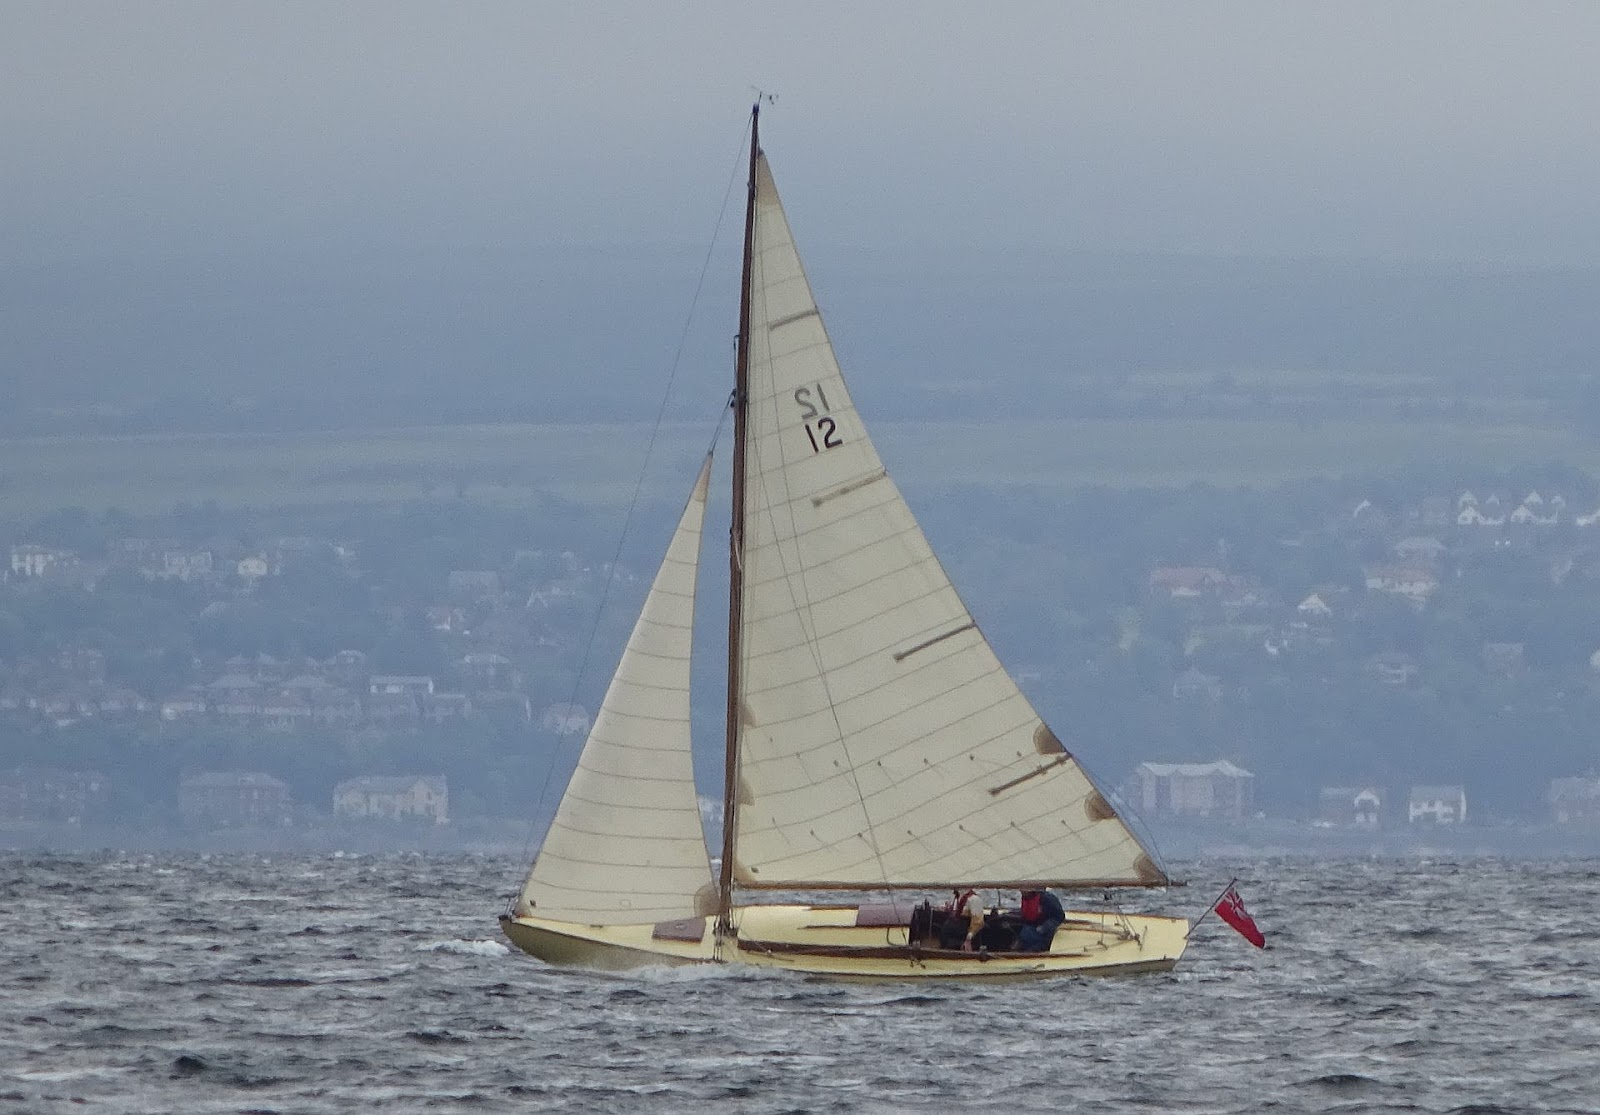 The Serpent Yacht Club: Portavadie Race and Muster